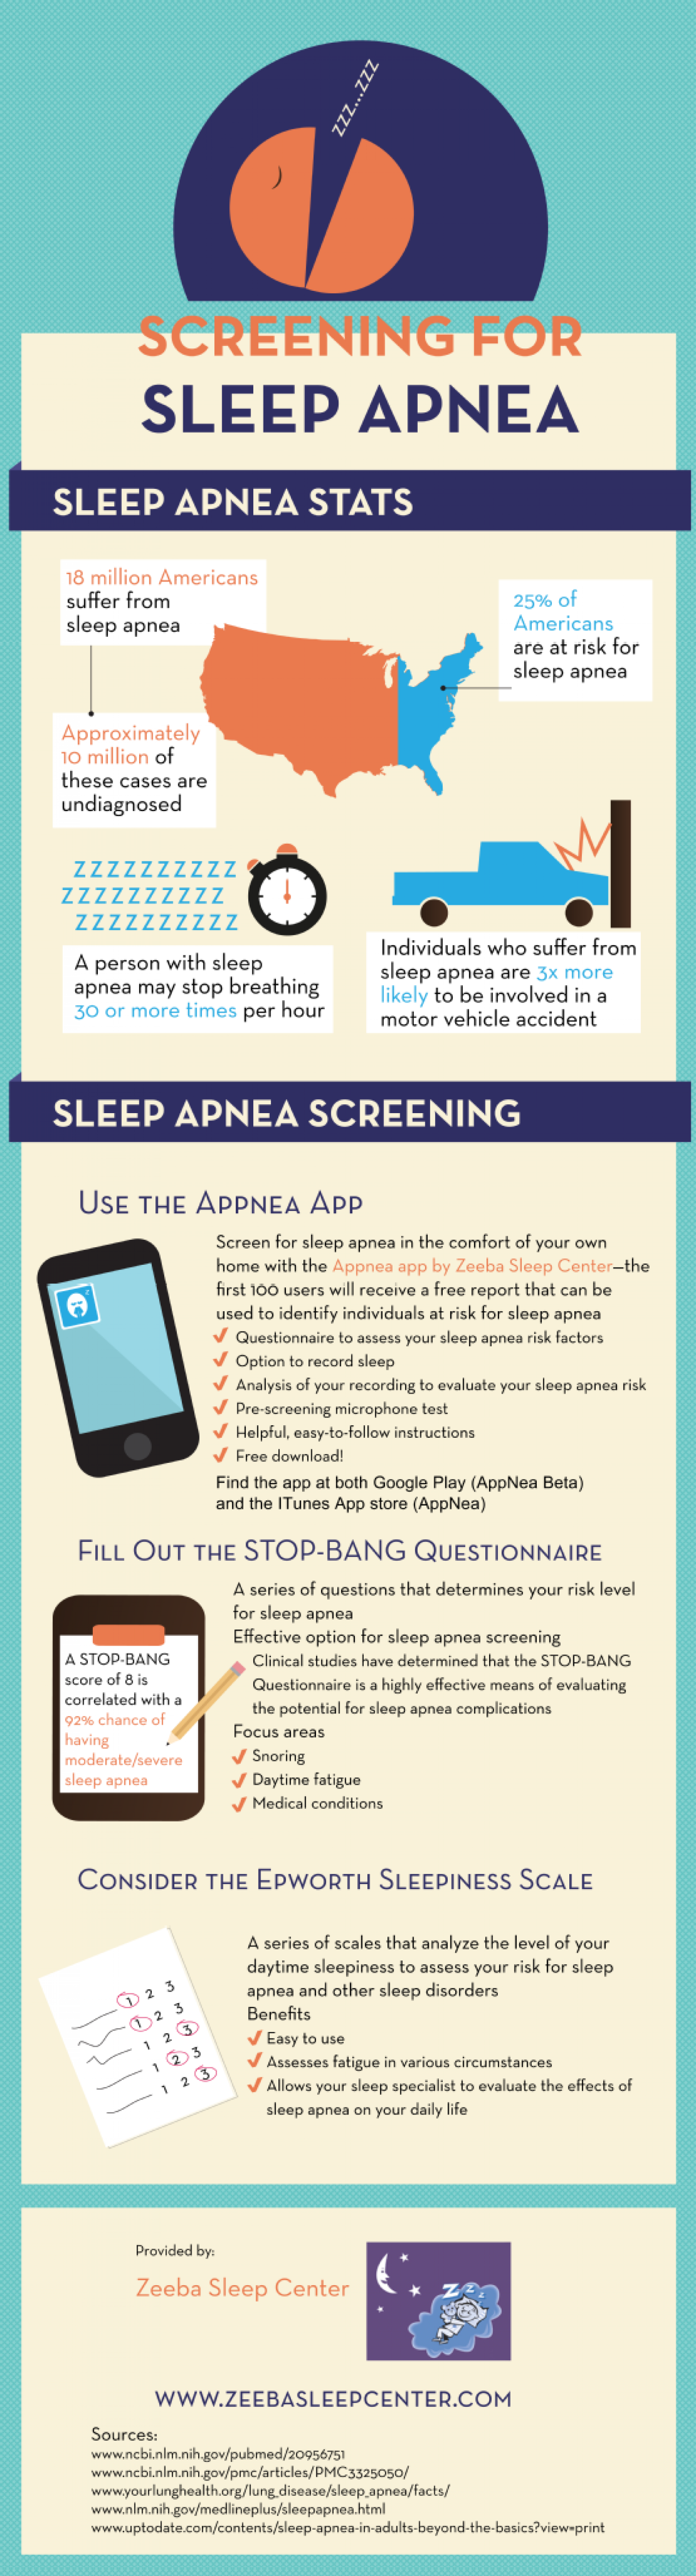 Screening for Sleep Apnea Infographic